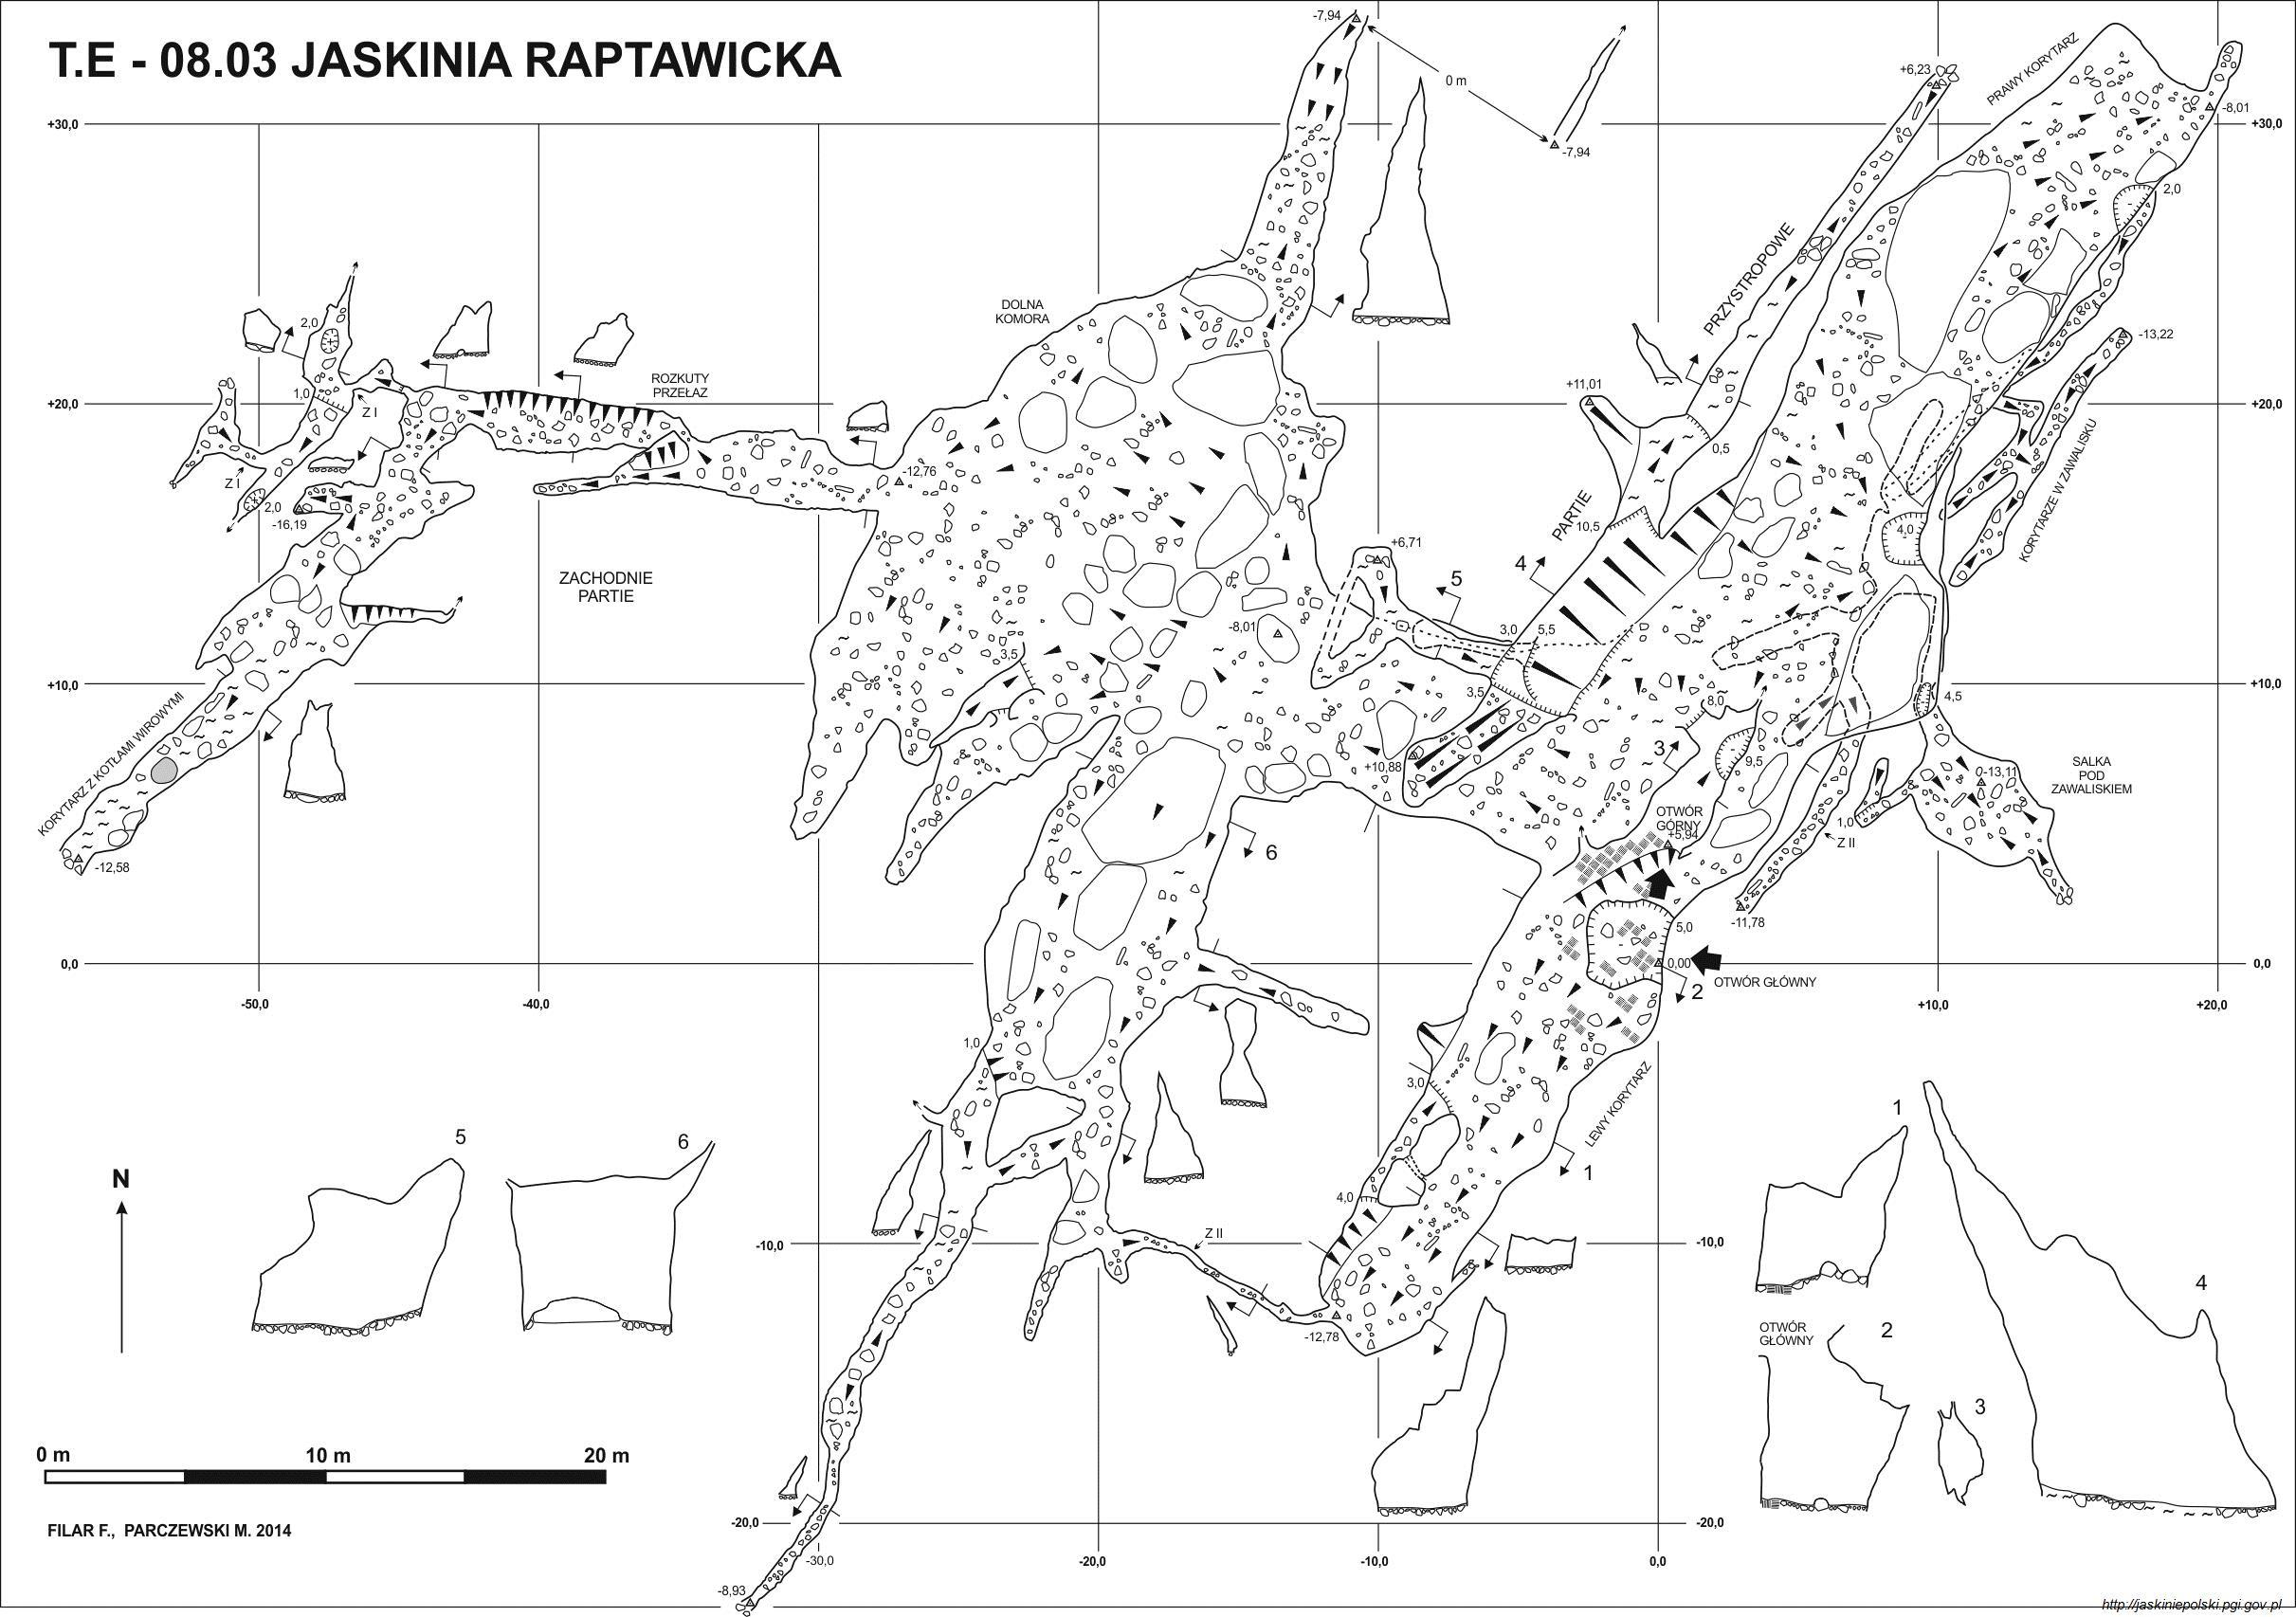 raptawicka-plan